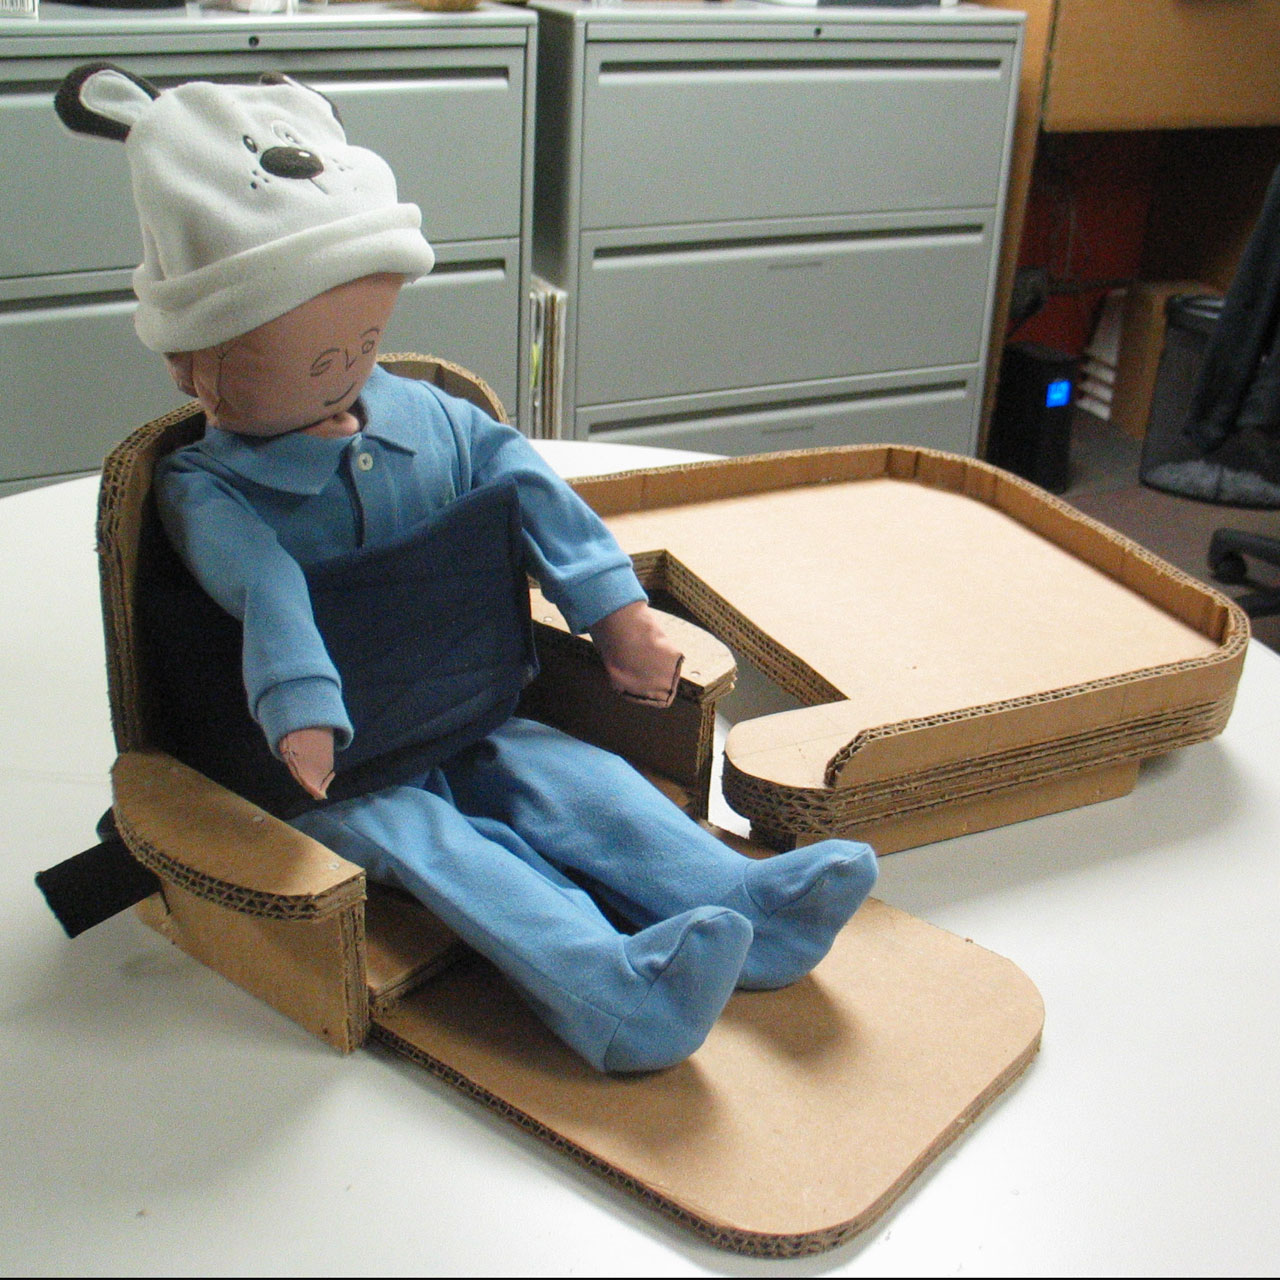 Toddler-sized doll in a cardboard seat